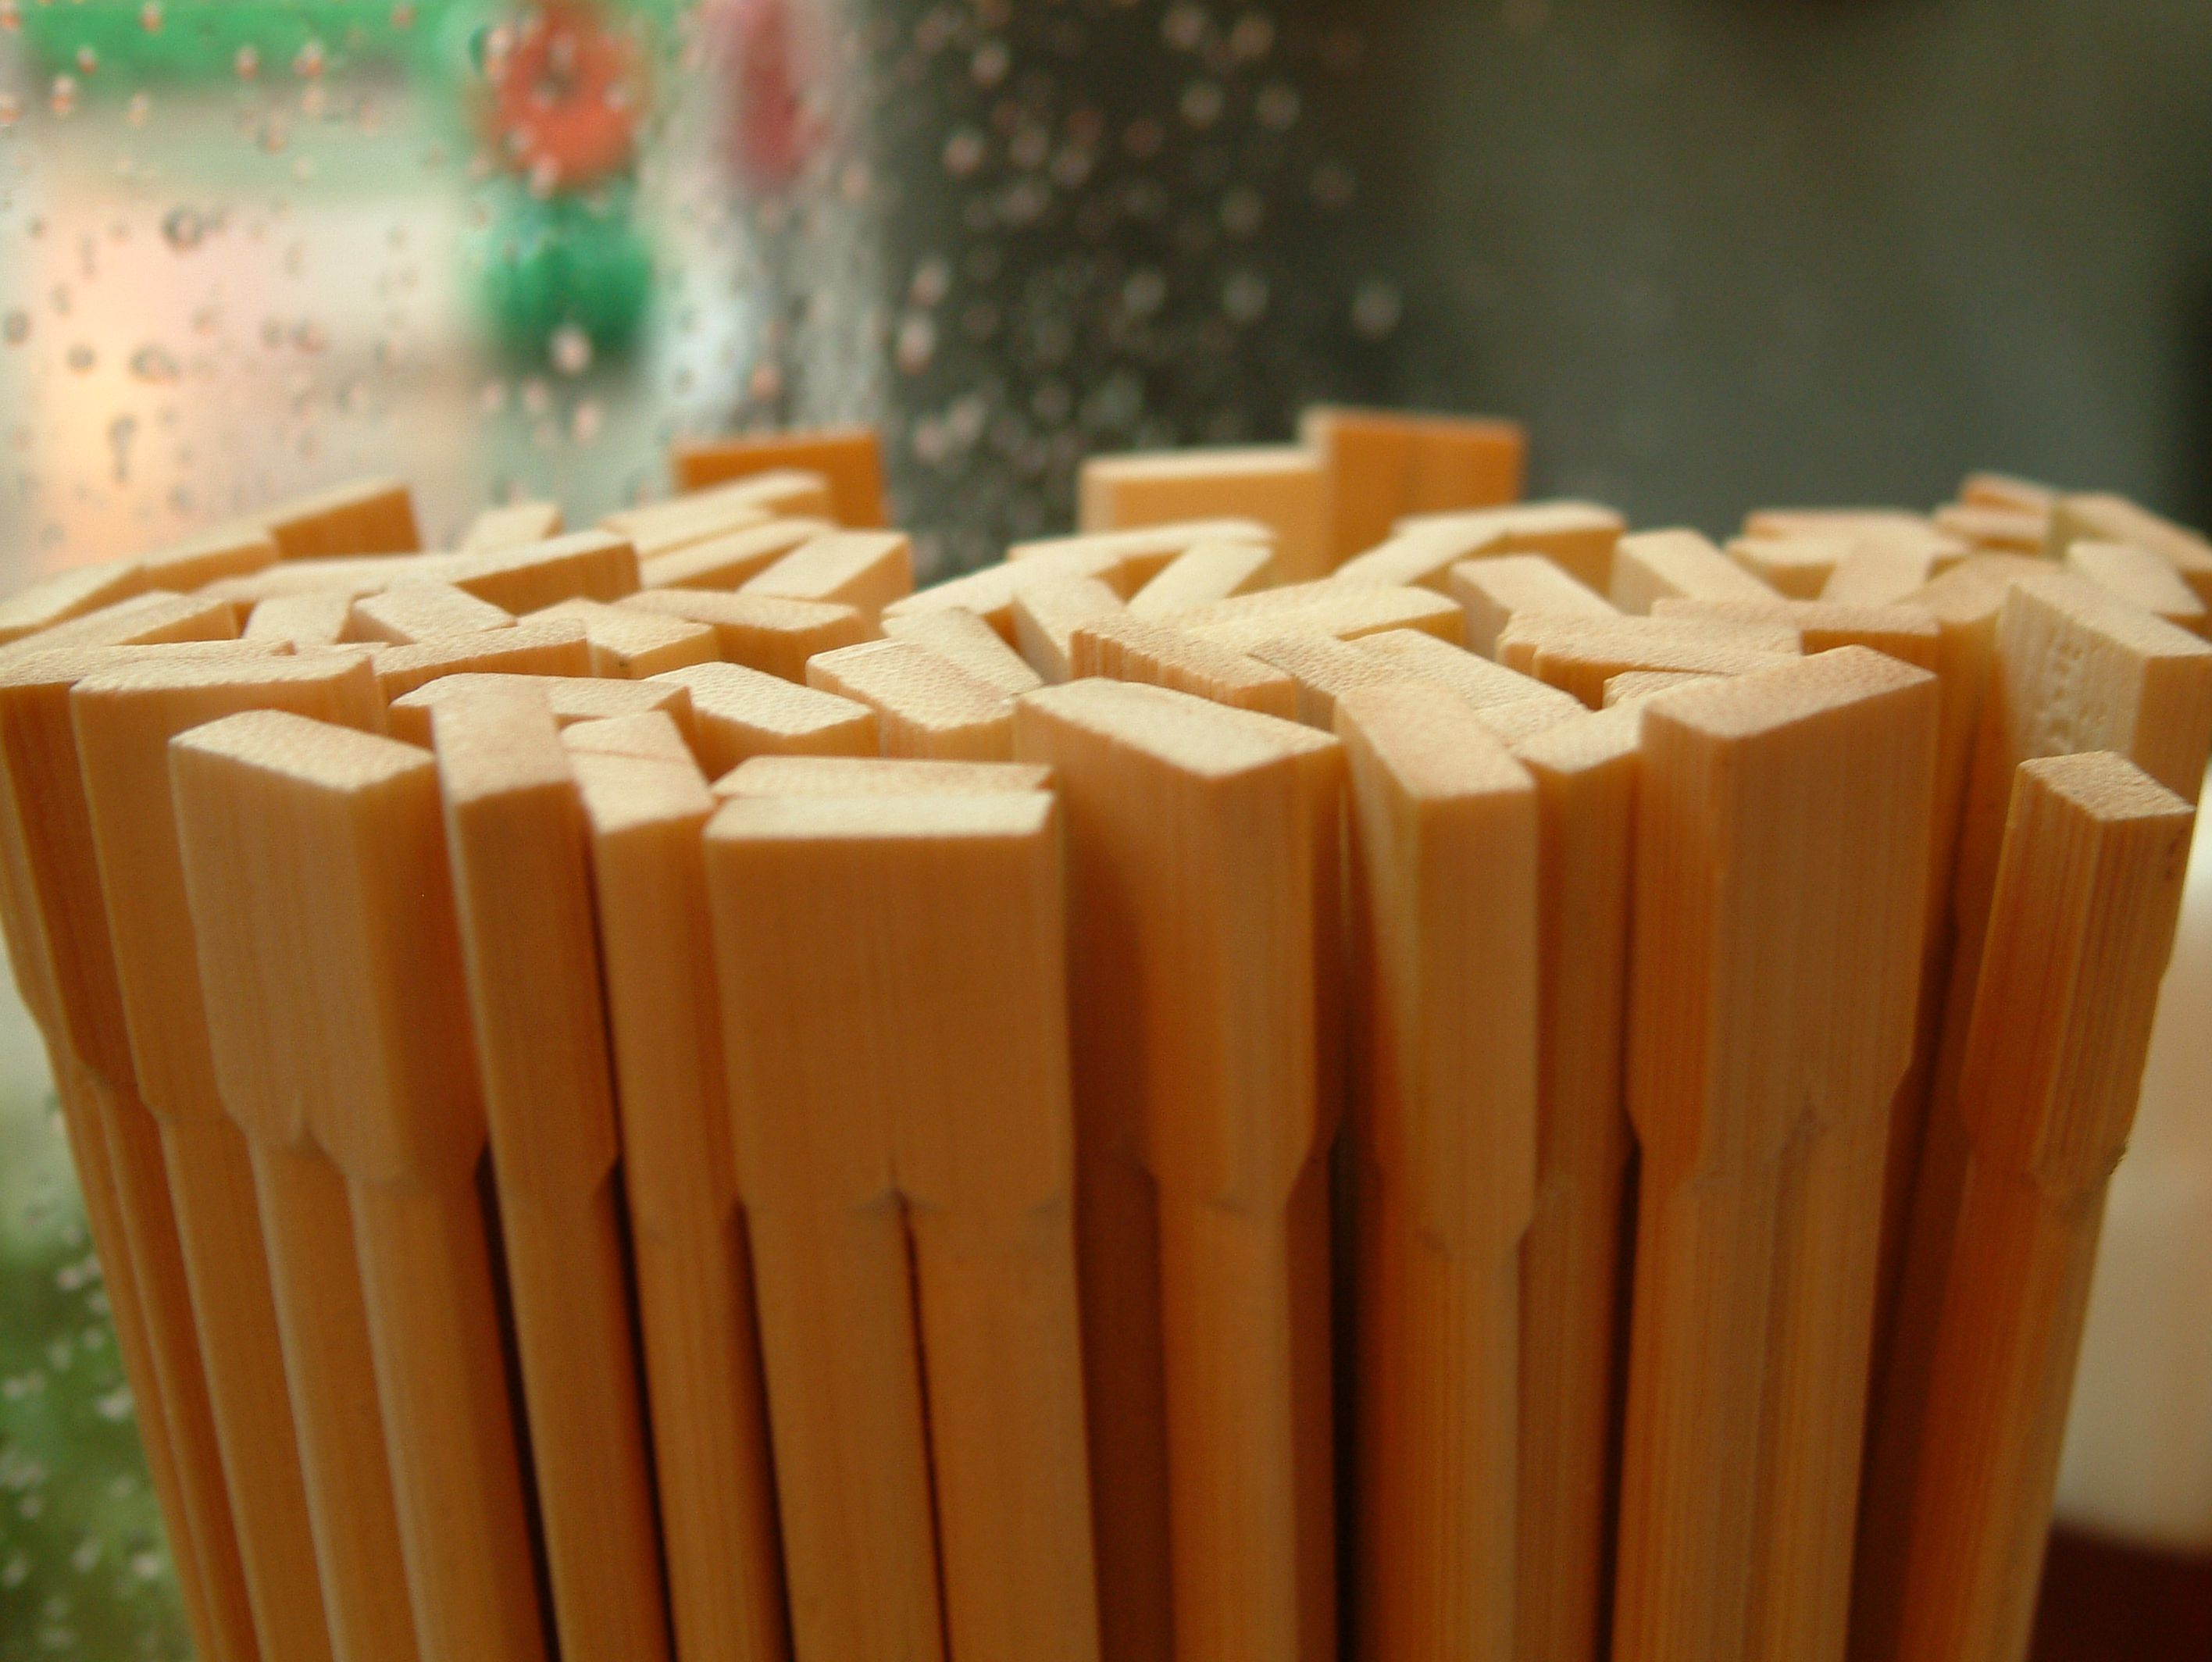 Disposable Chopsticks Bad For Health And Environment